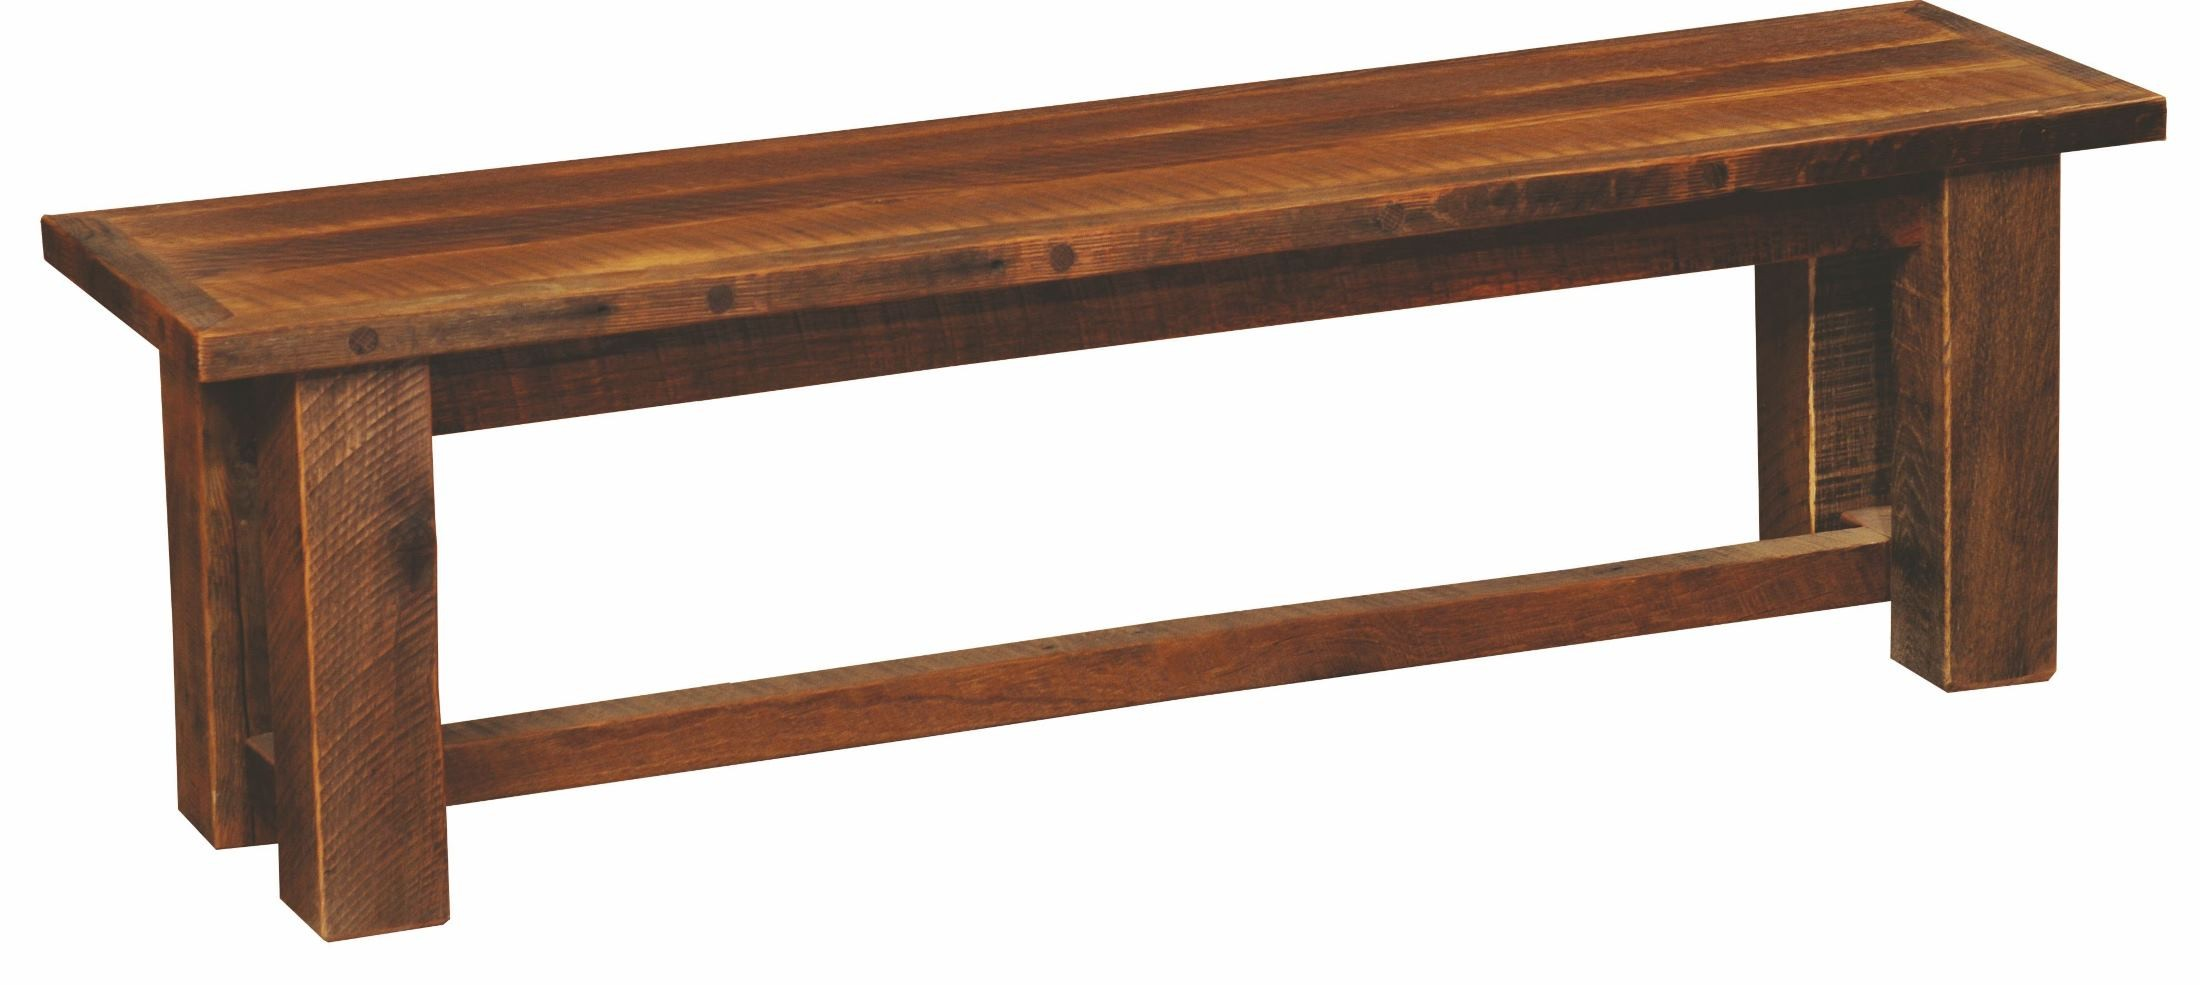 Barnwood 48 Antique Oak Top Bench From Fireside Lodge: oak bench